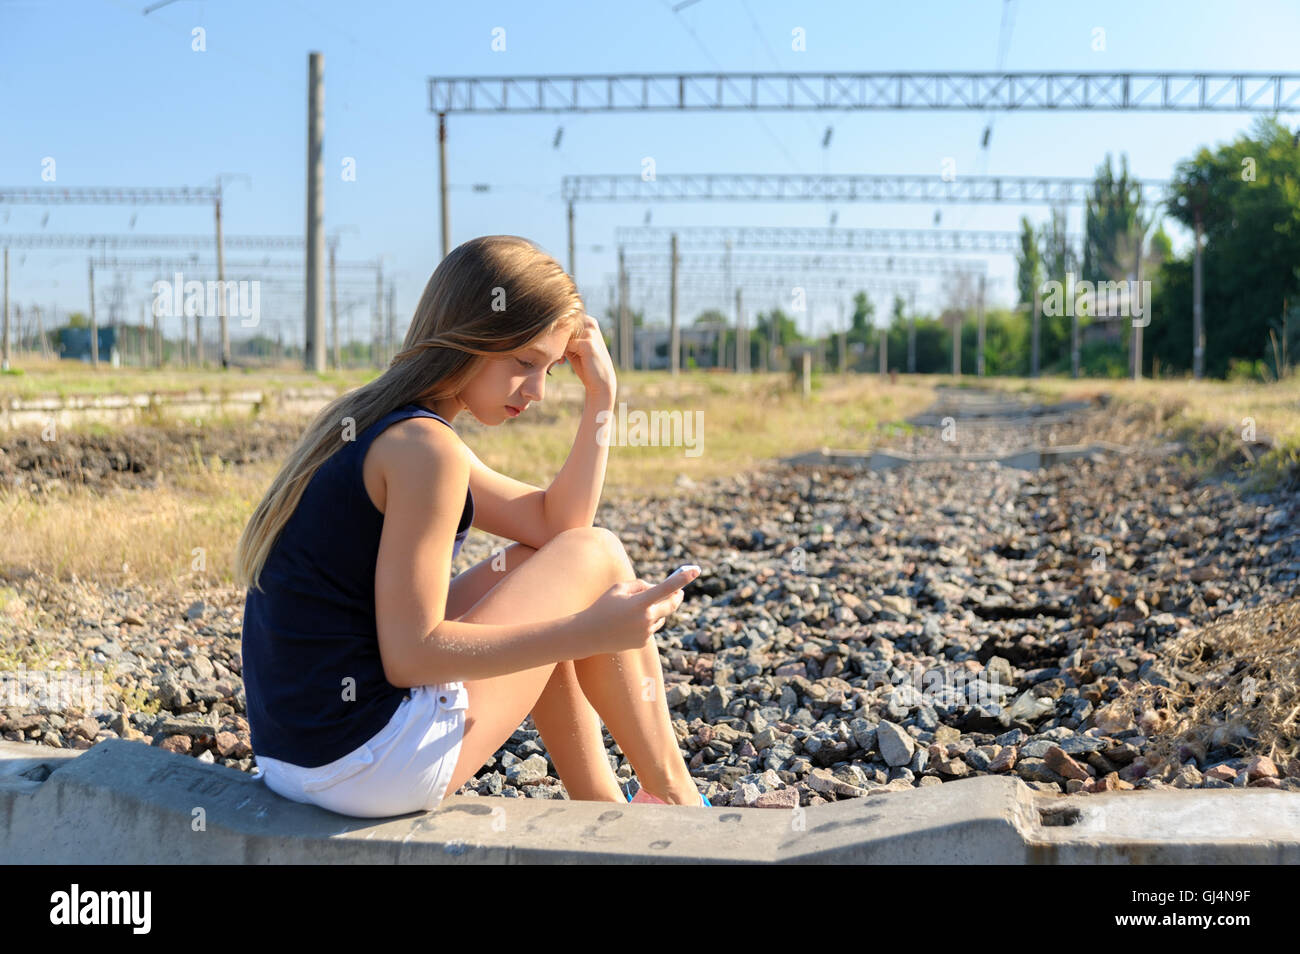 Teenager girl with mobile sitting on unfinished rail track - Stock Image